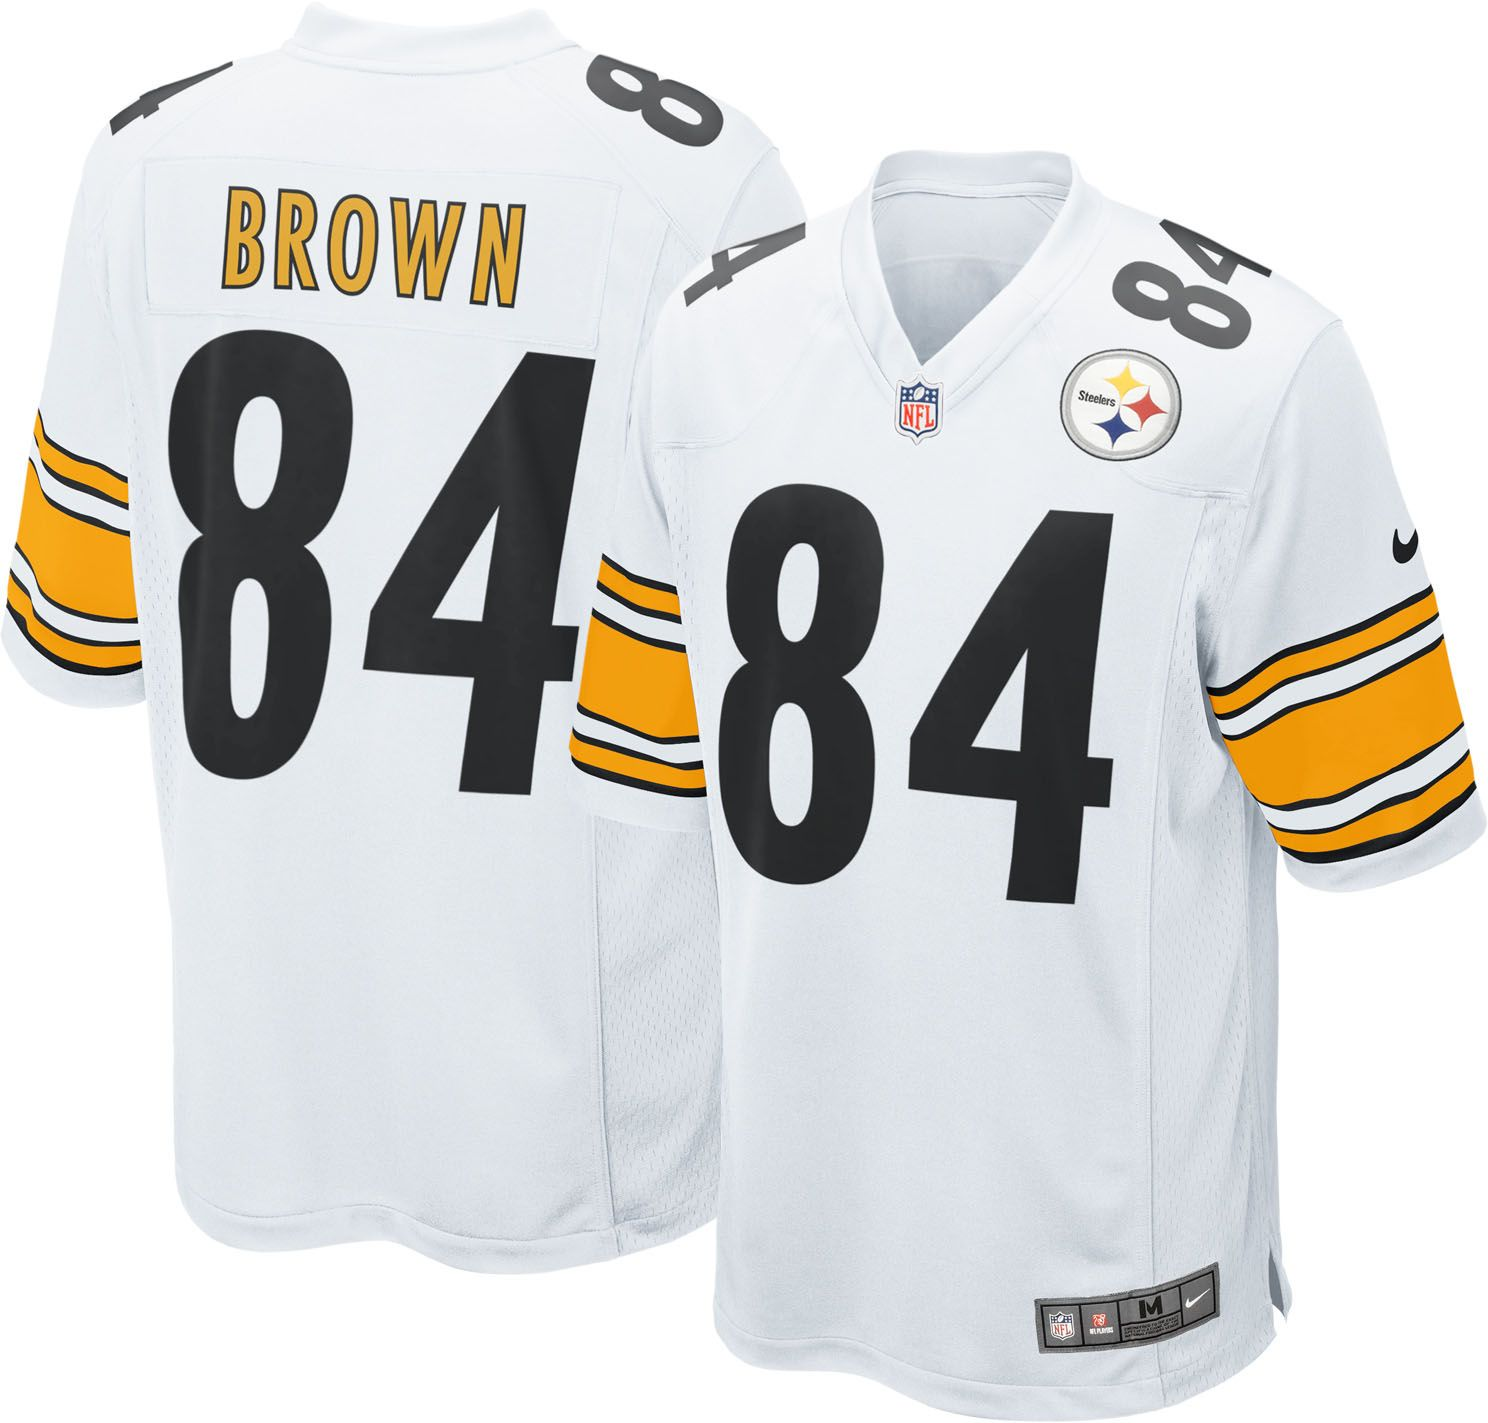 pittsburgh steelers jerseys